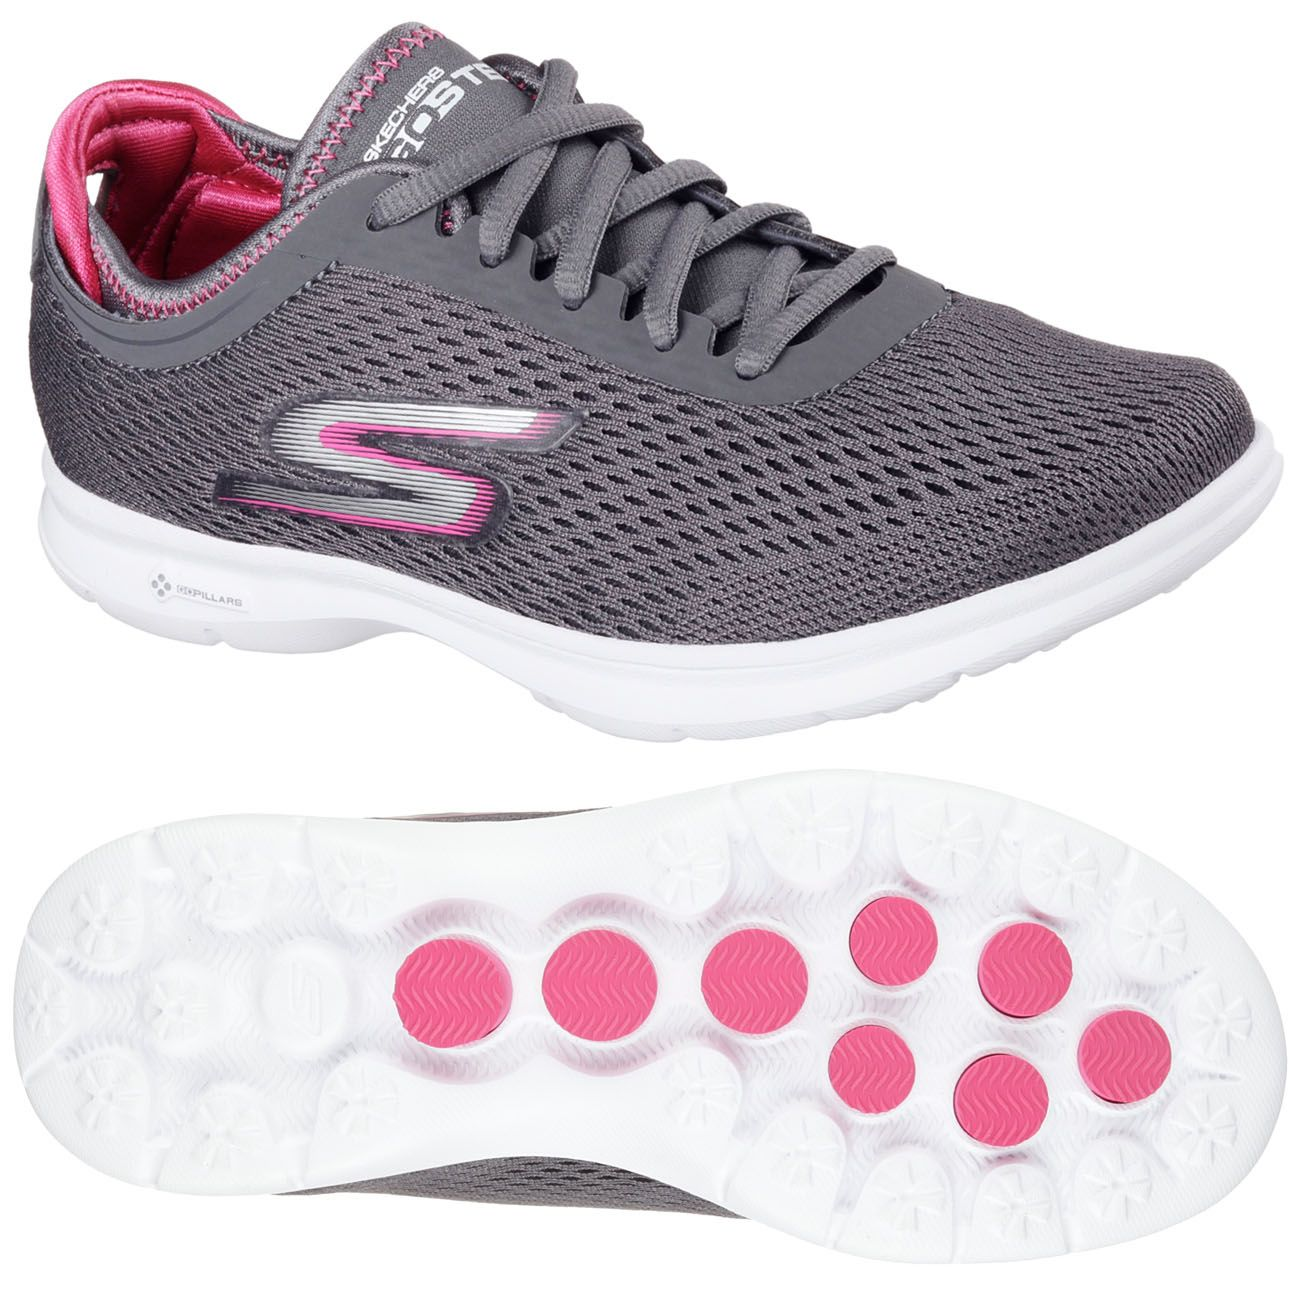 skechers go step sport ladies athletic shoes aw16